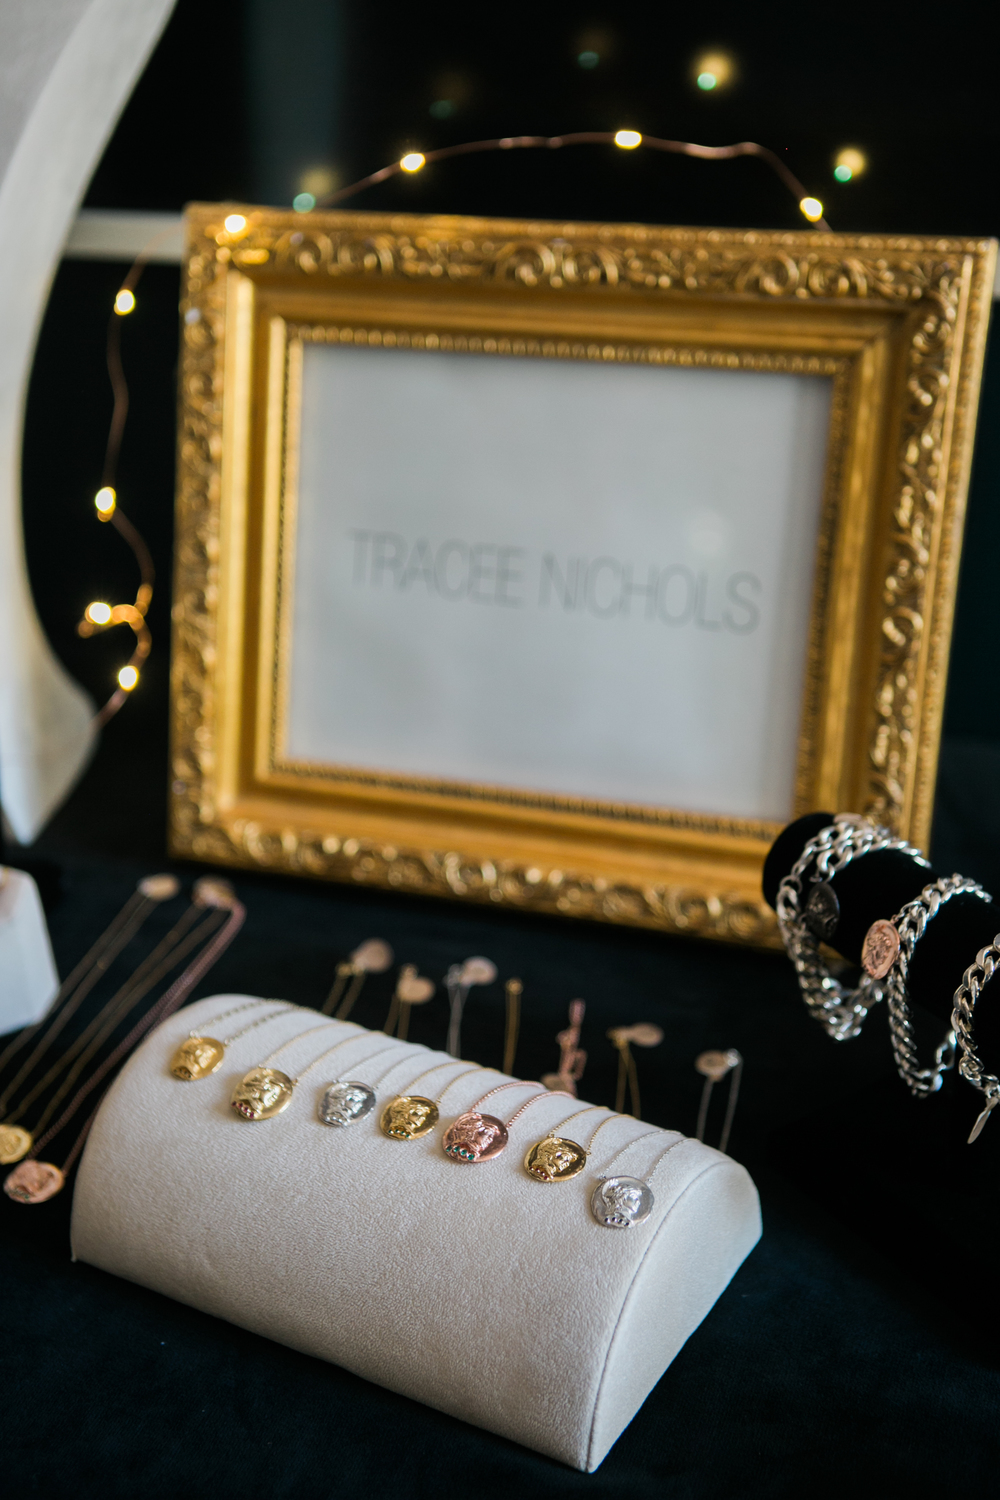 Tracee Nichols Jewelry. Photo by Jenna Elliott of One Eleven Photography